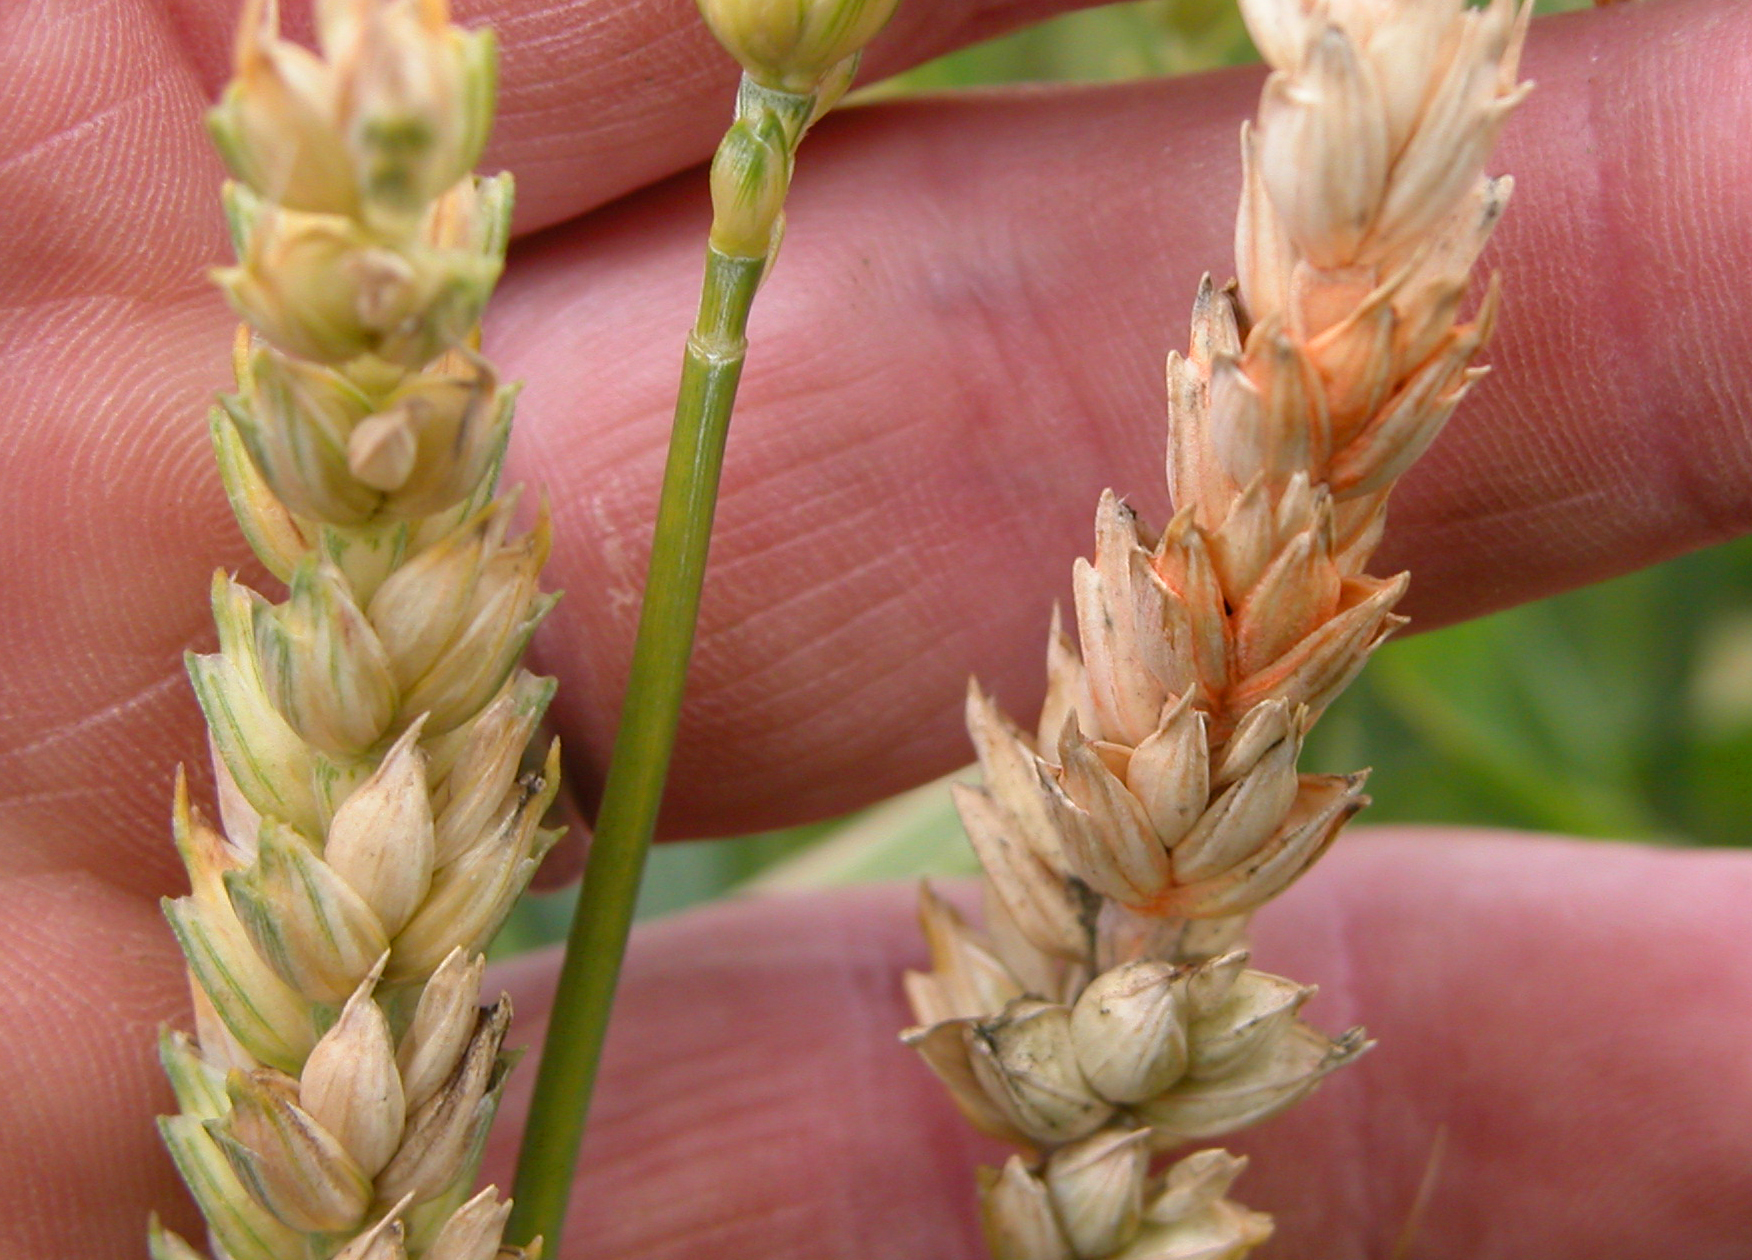 Pink or orange spore masses can sometimes be seen on spikelets.